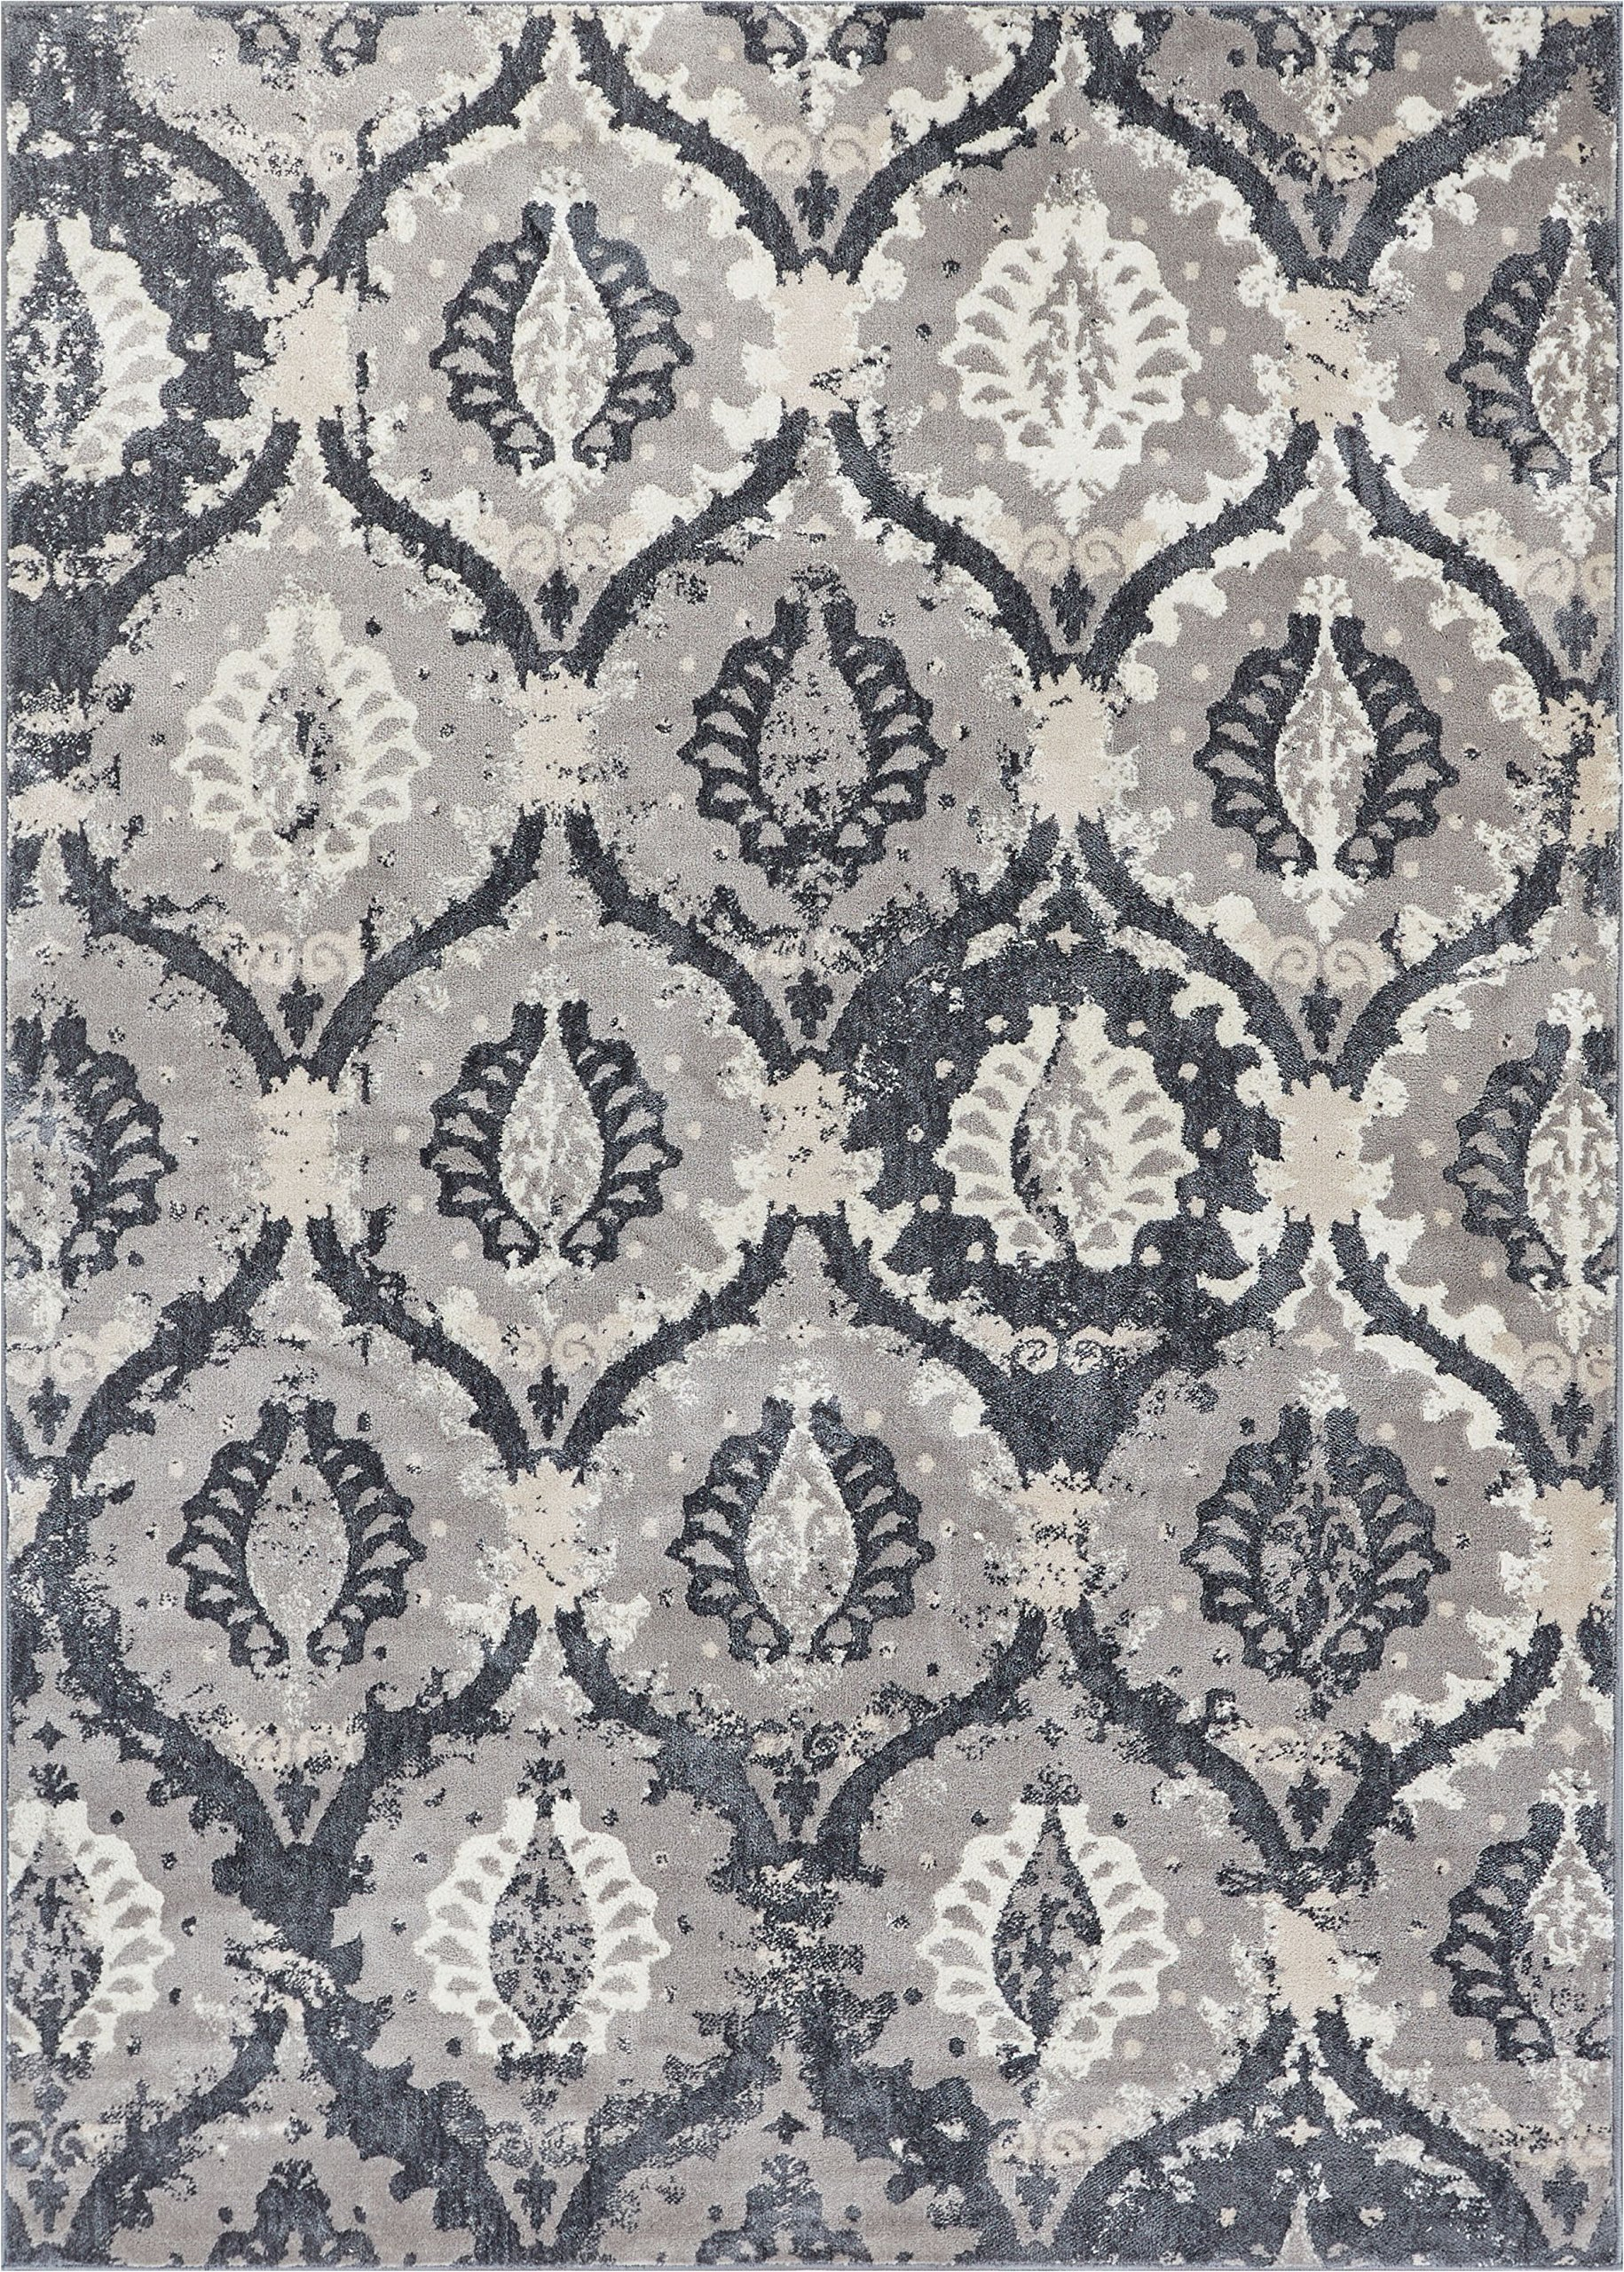 Well Woven Allegro Grey Microfiber High-Low Pile Vintage Abstract Erased 9x13 (9'3'' x 12'6'') Area Rug Modern Ogee Panel Floral Oriental Carpet